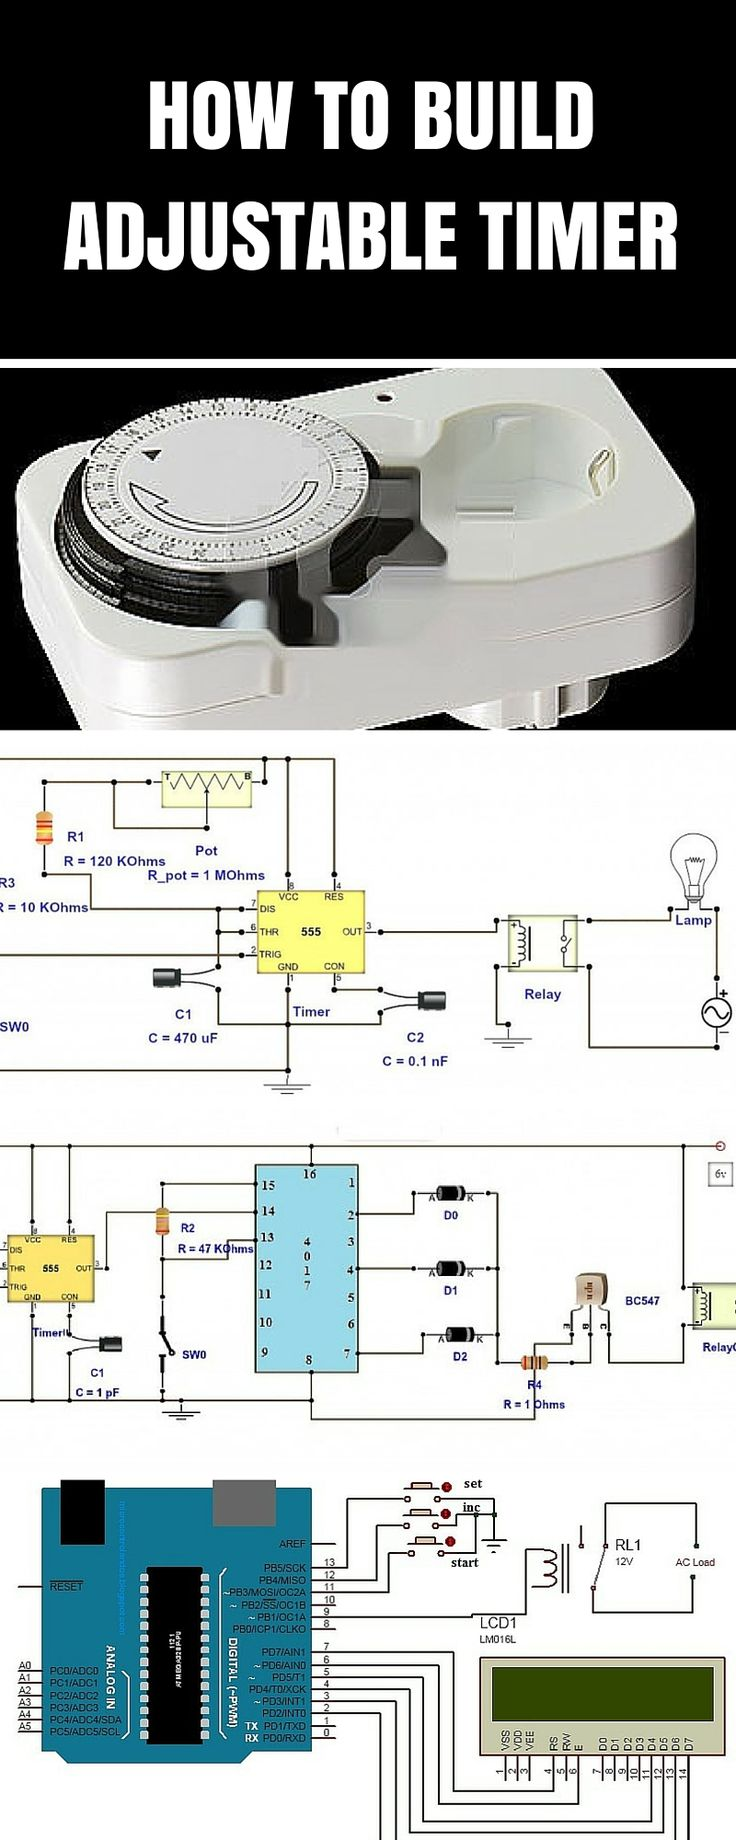 197 Best Elektronik Images On Pinterest Electronics Projects Project Electric Circuit Adjustable Timer Diagram With Relay Output